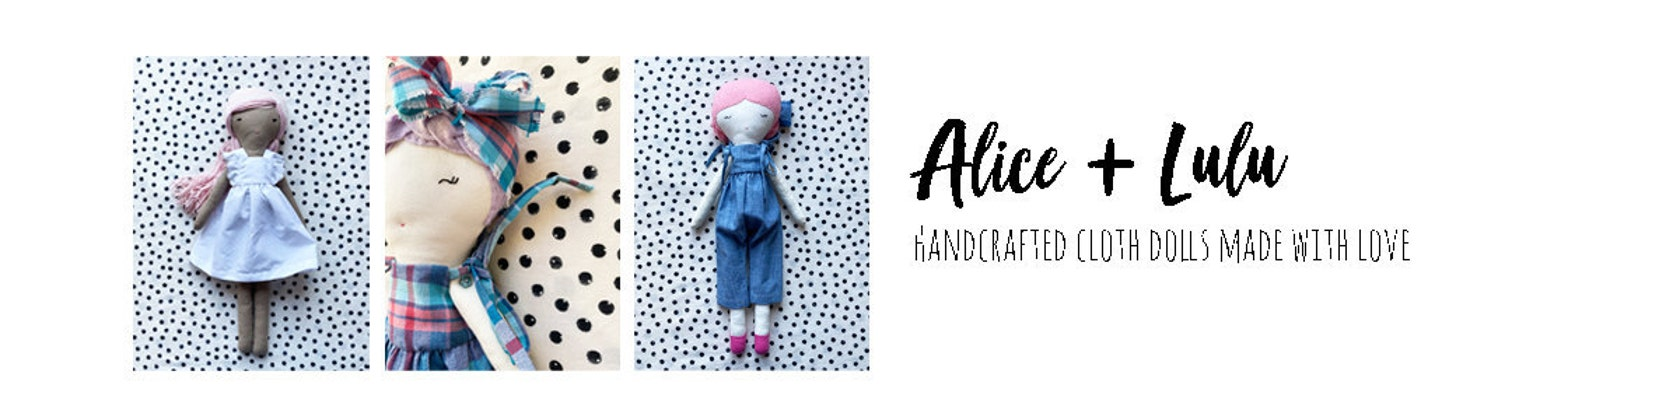 alice and lulu cloth dolls notjustatit christmas gift guide 2020